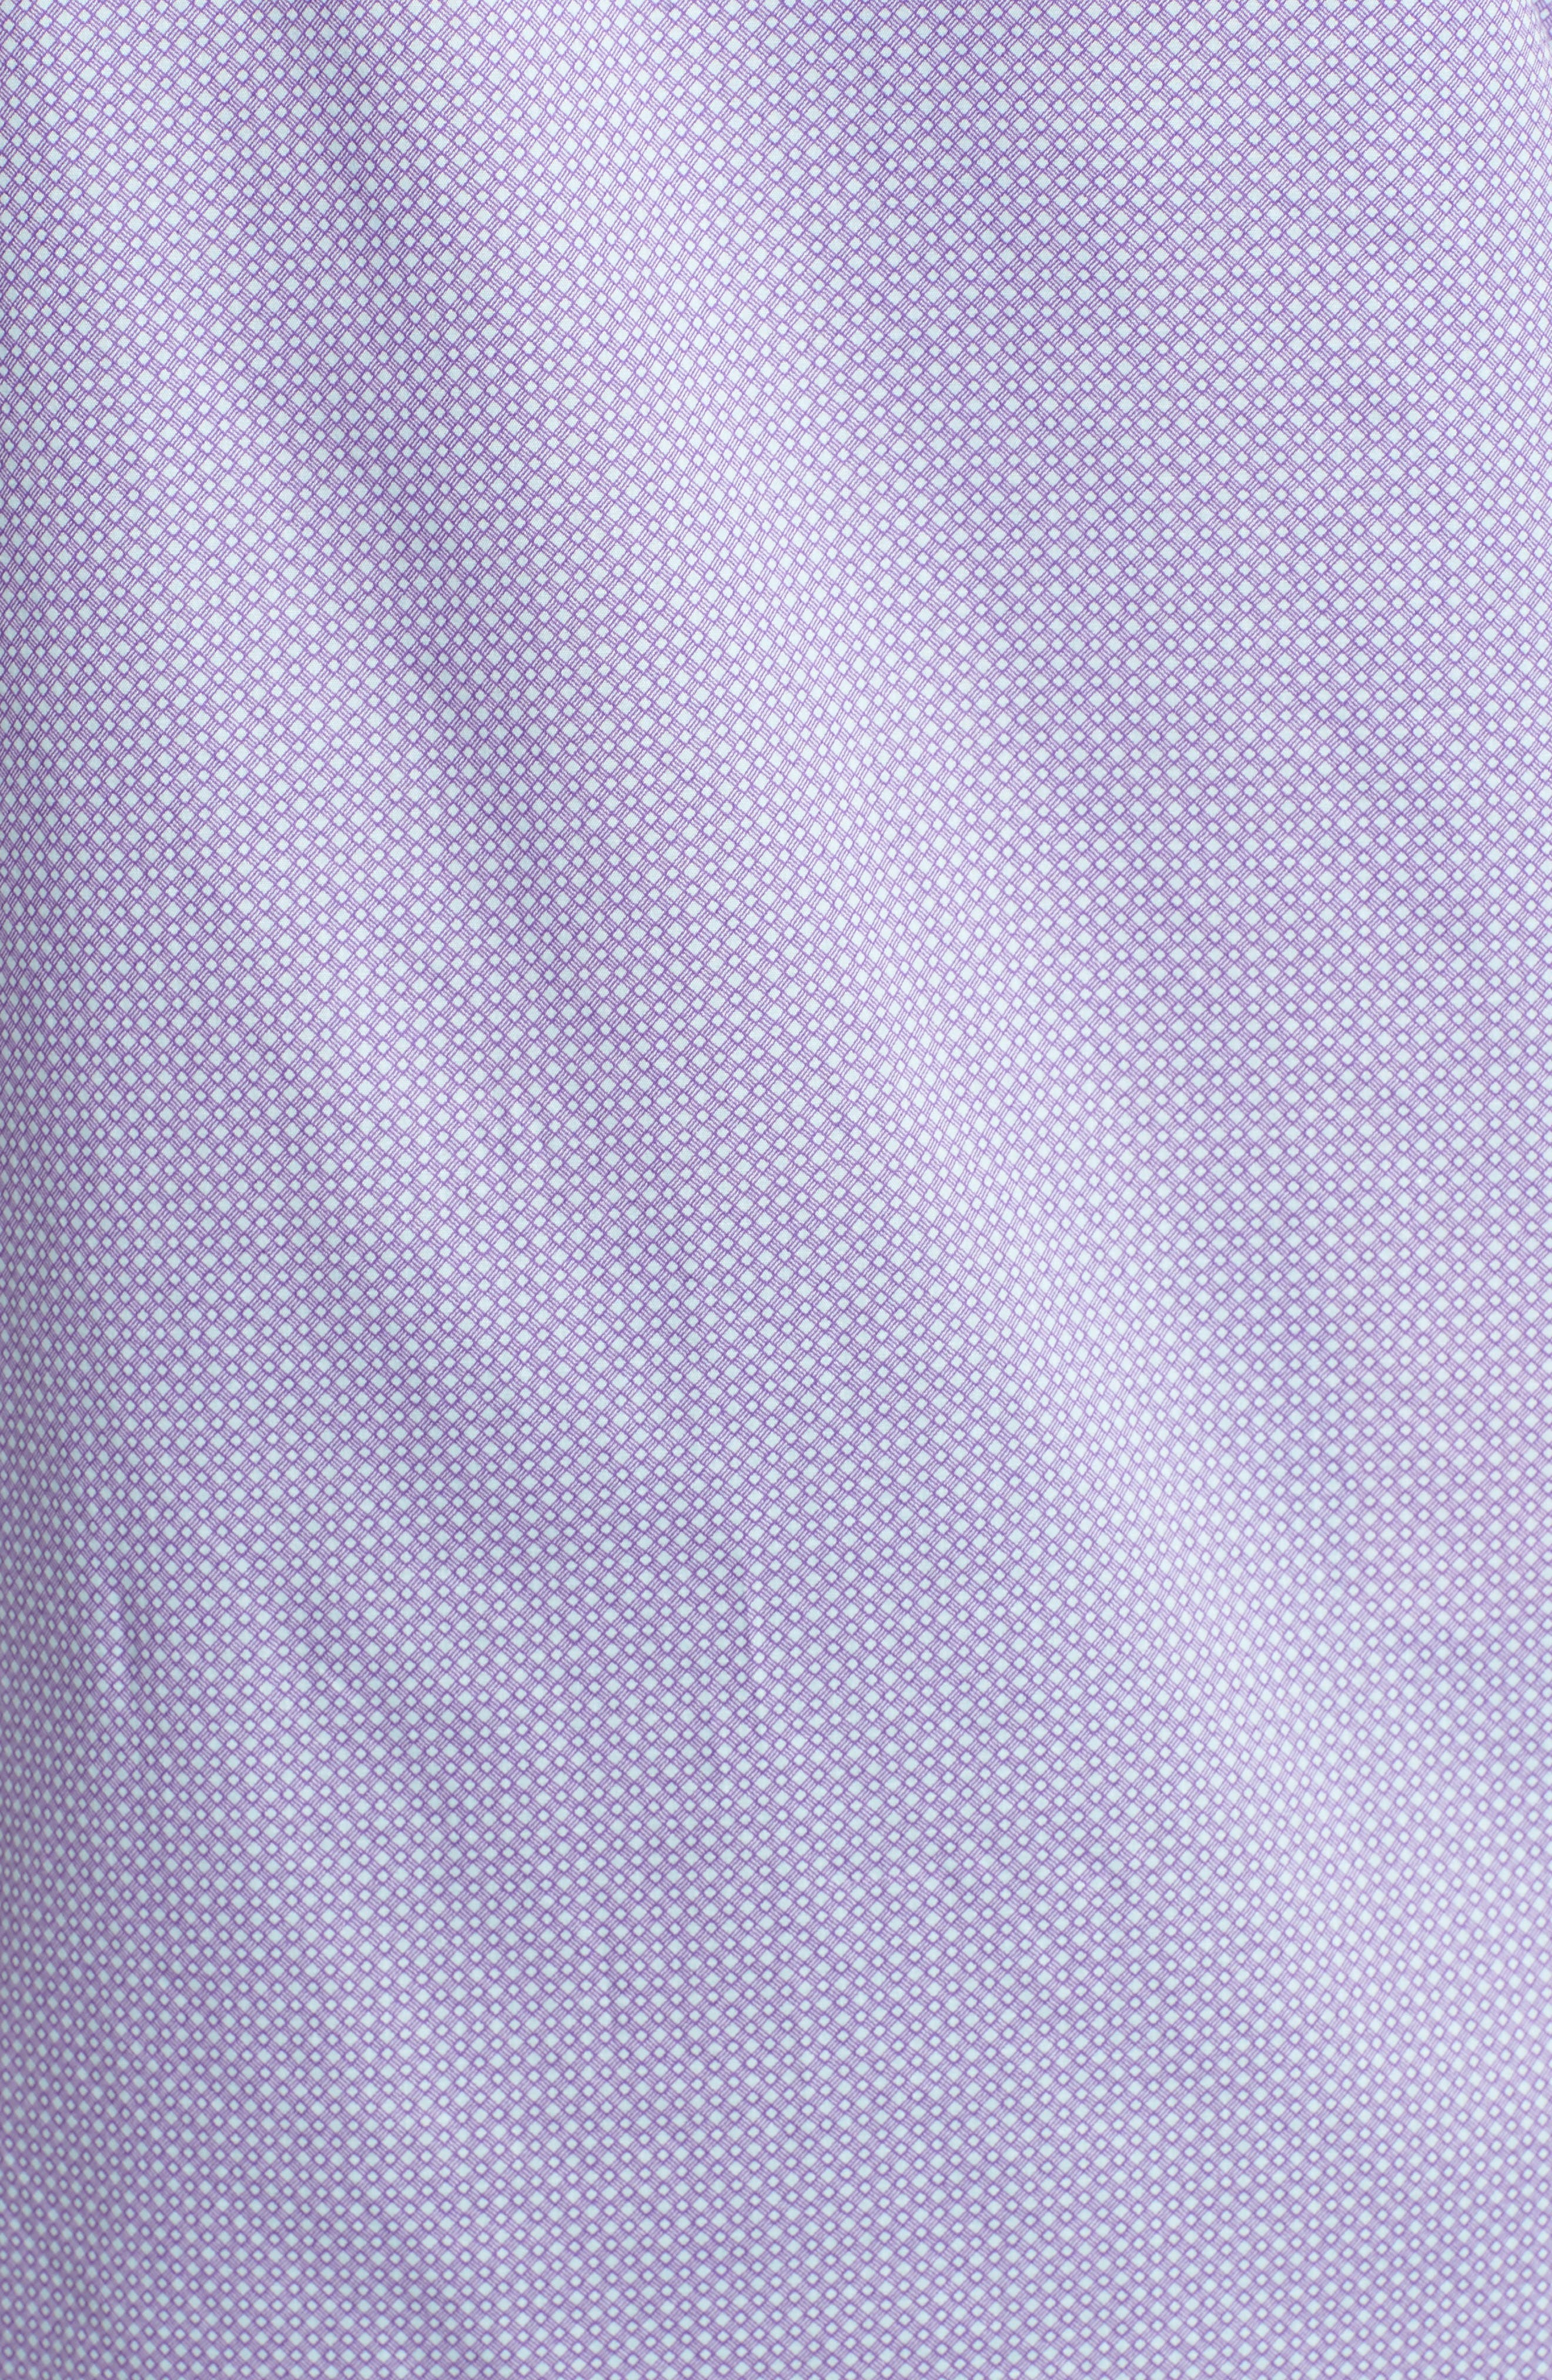 O'Malley Circle Print Sport Shirt,                             Alternate thumbnail 5, color,                             Purple